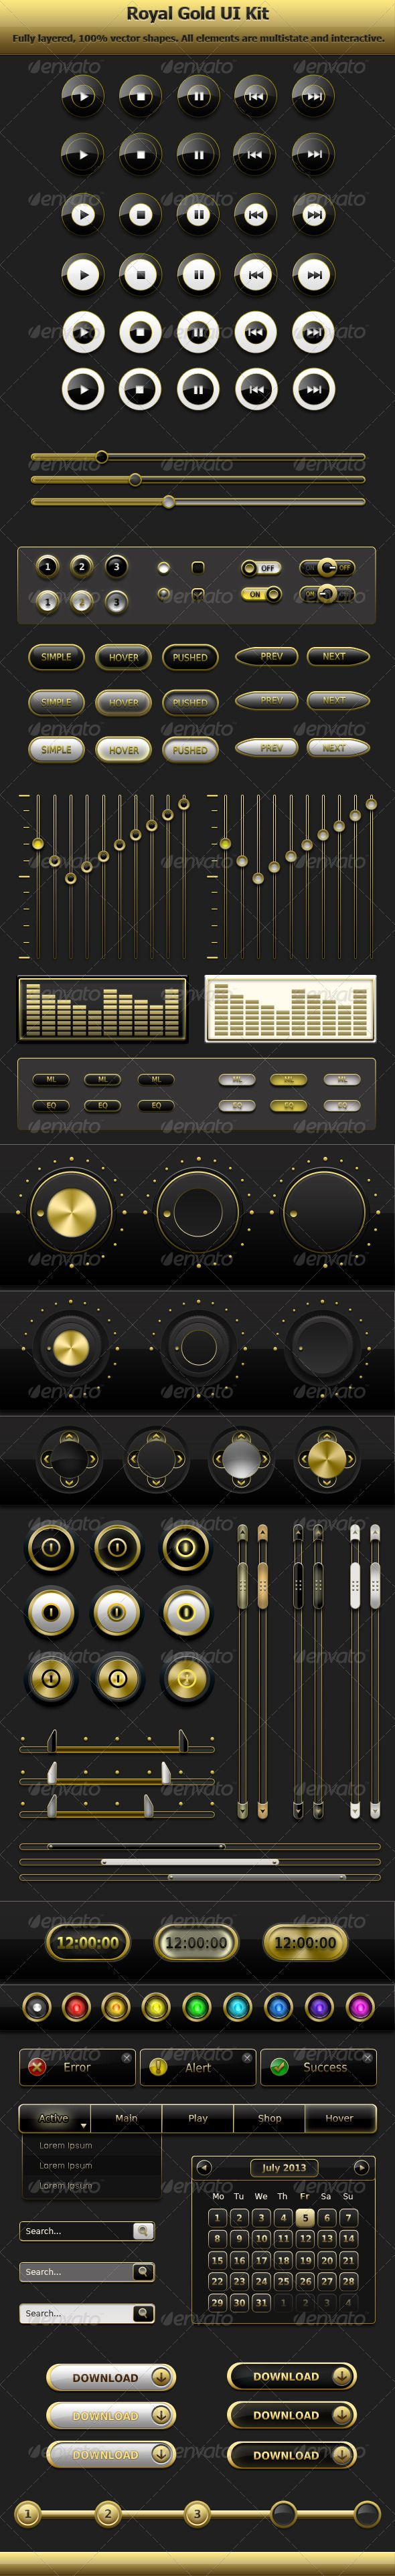 Entertainment User Interface Kit #GraphicRiver Entertainment User Interface Kit Royal Gold User Interface Kit is a fully vector set of different UI web elements. It was designed to ensure full comfort in resizing and editing shapes without quality loss. All buttons are interactive and have 3 states – simple, hover and pressed. Elements like scroll bars are provided with hover effect. Main colors are white, black and gold, but you can easily change color of each element by yourself. All…